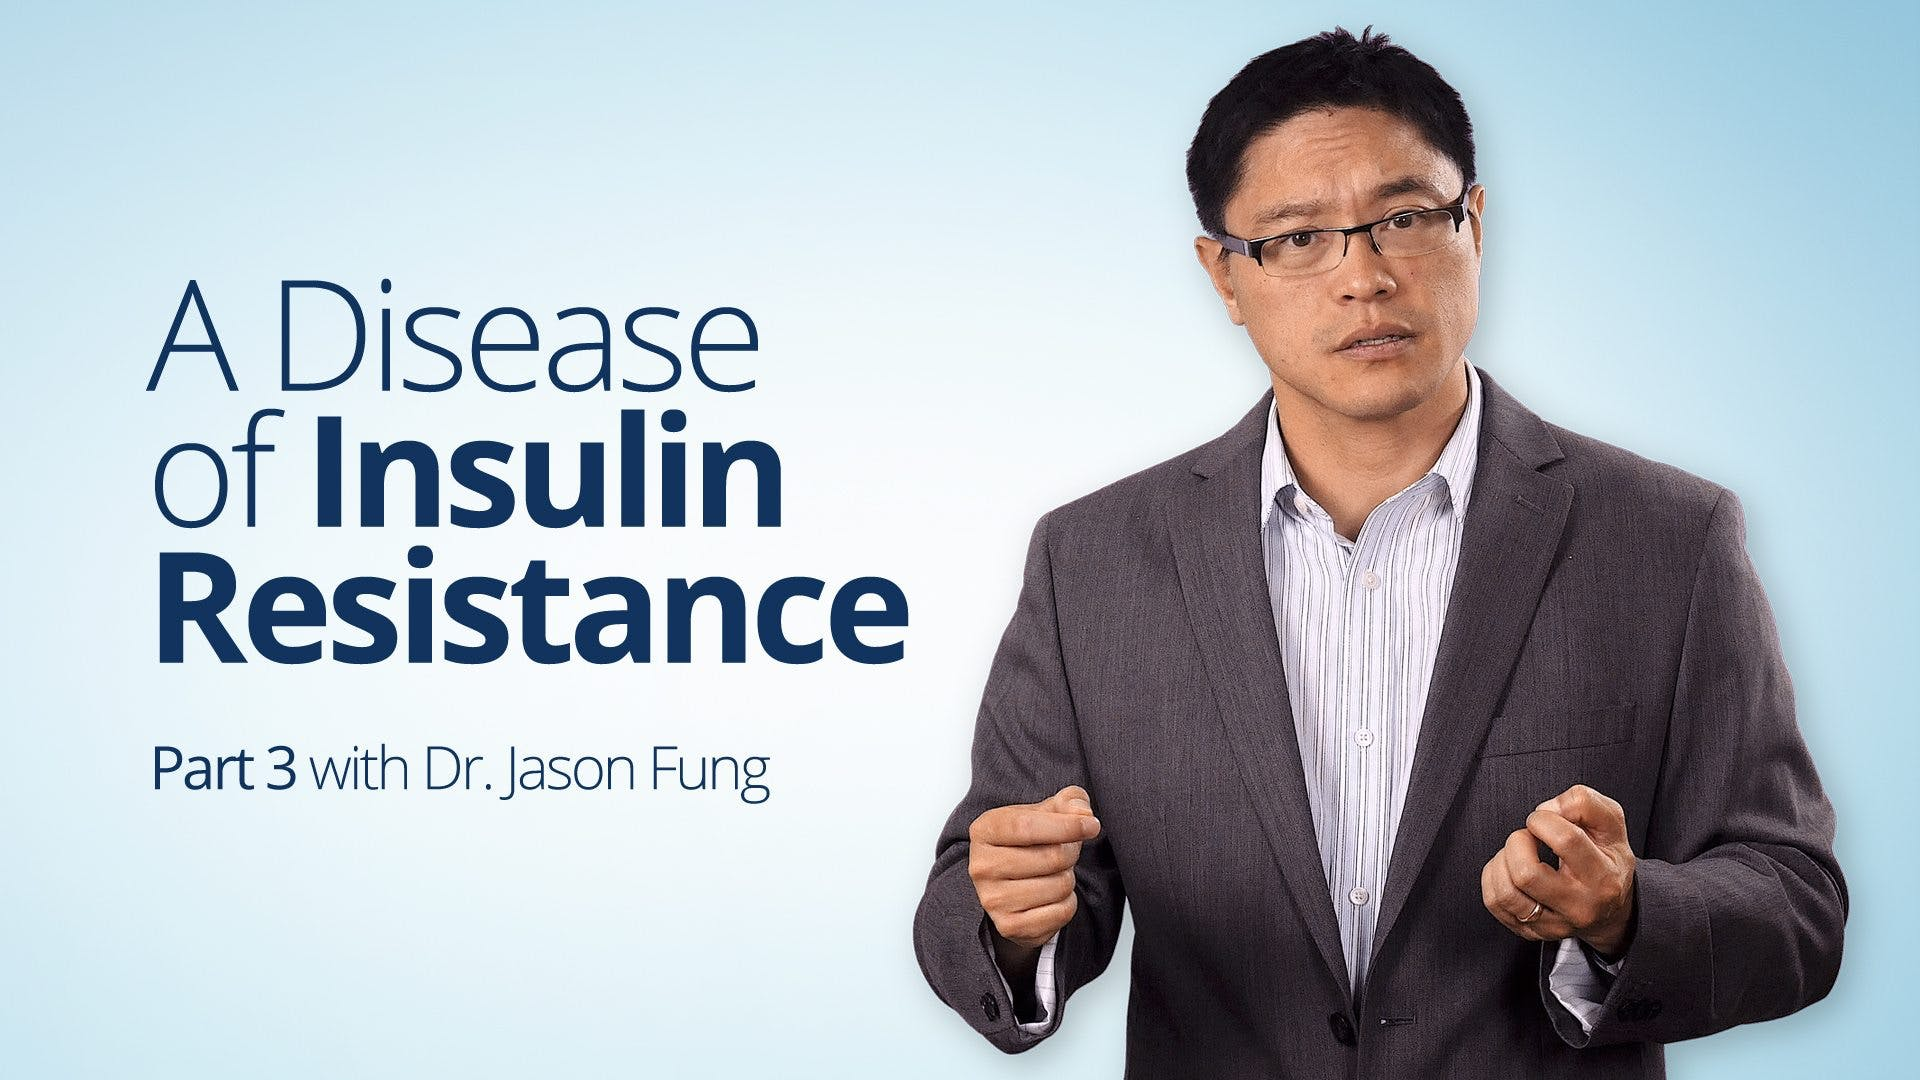 A disease of insulin resistance